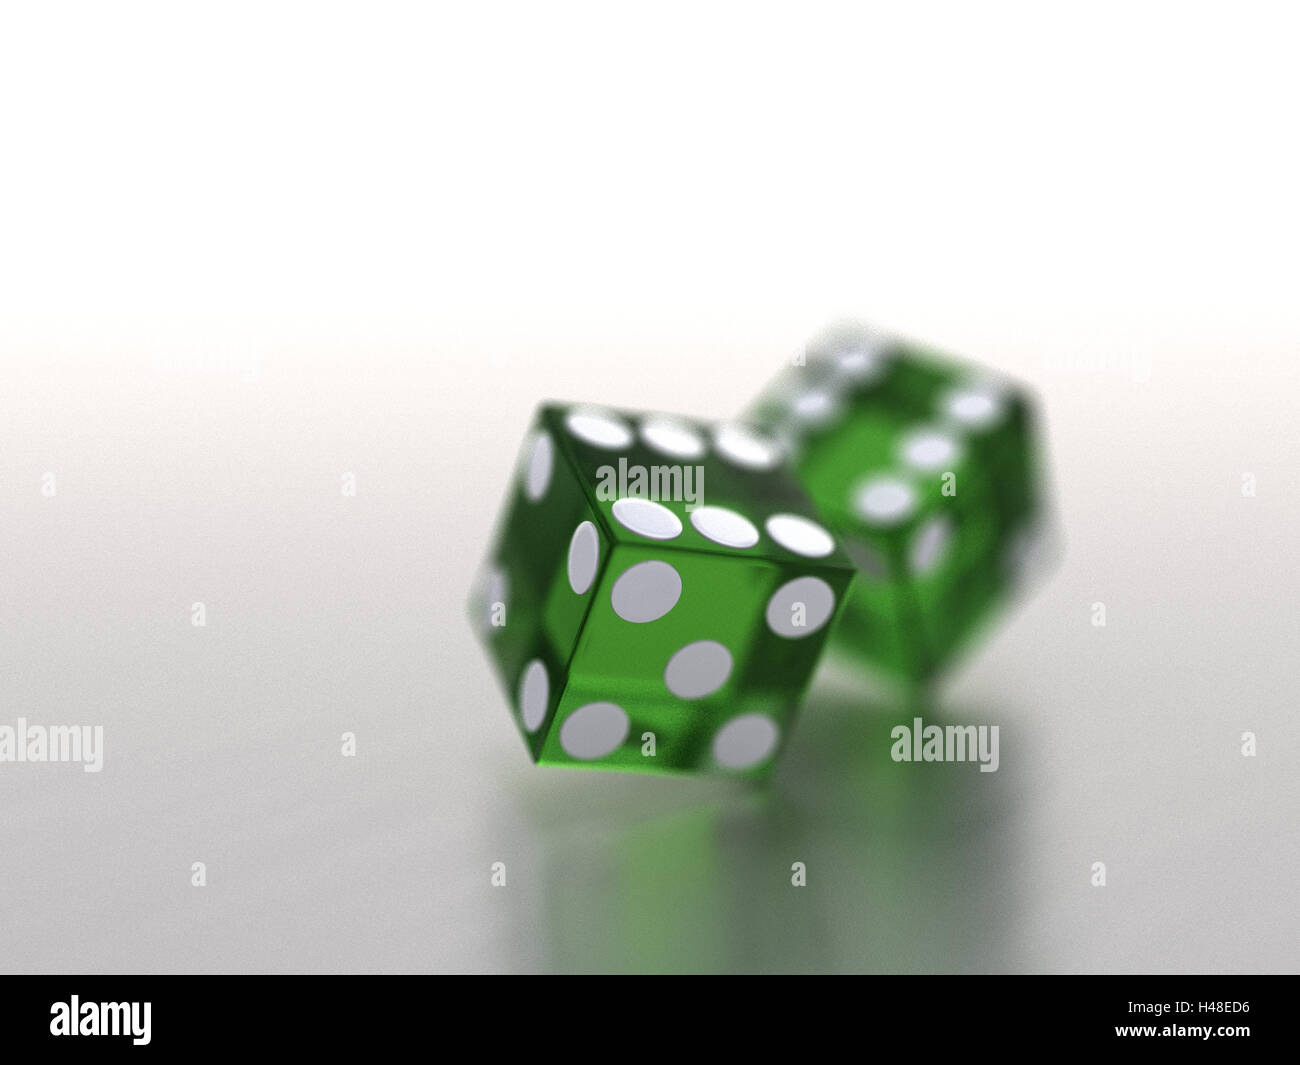 Cubes, two, green, transparent, blur, craps, game, goal, luck game, luck, chance, leisure time, entertainment, game - Stock Image